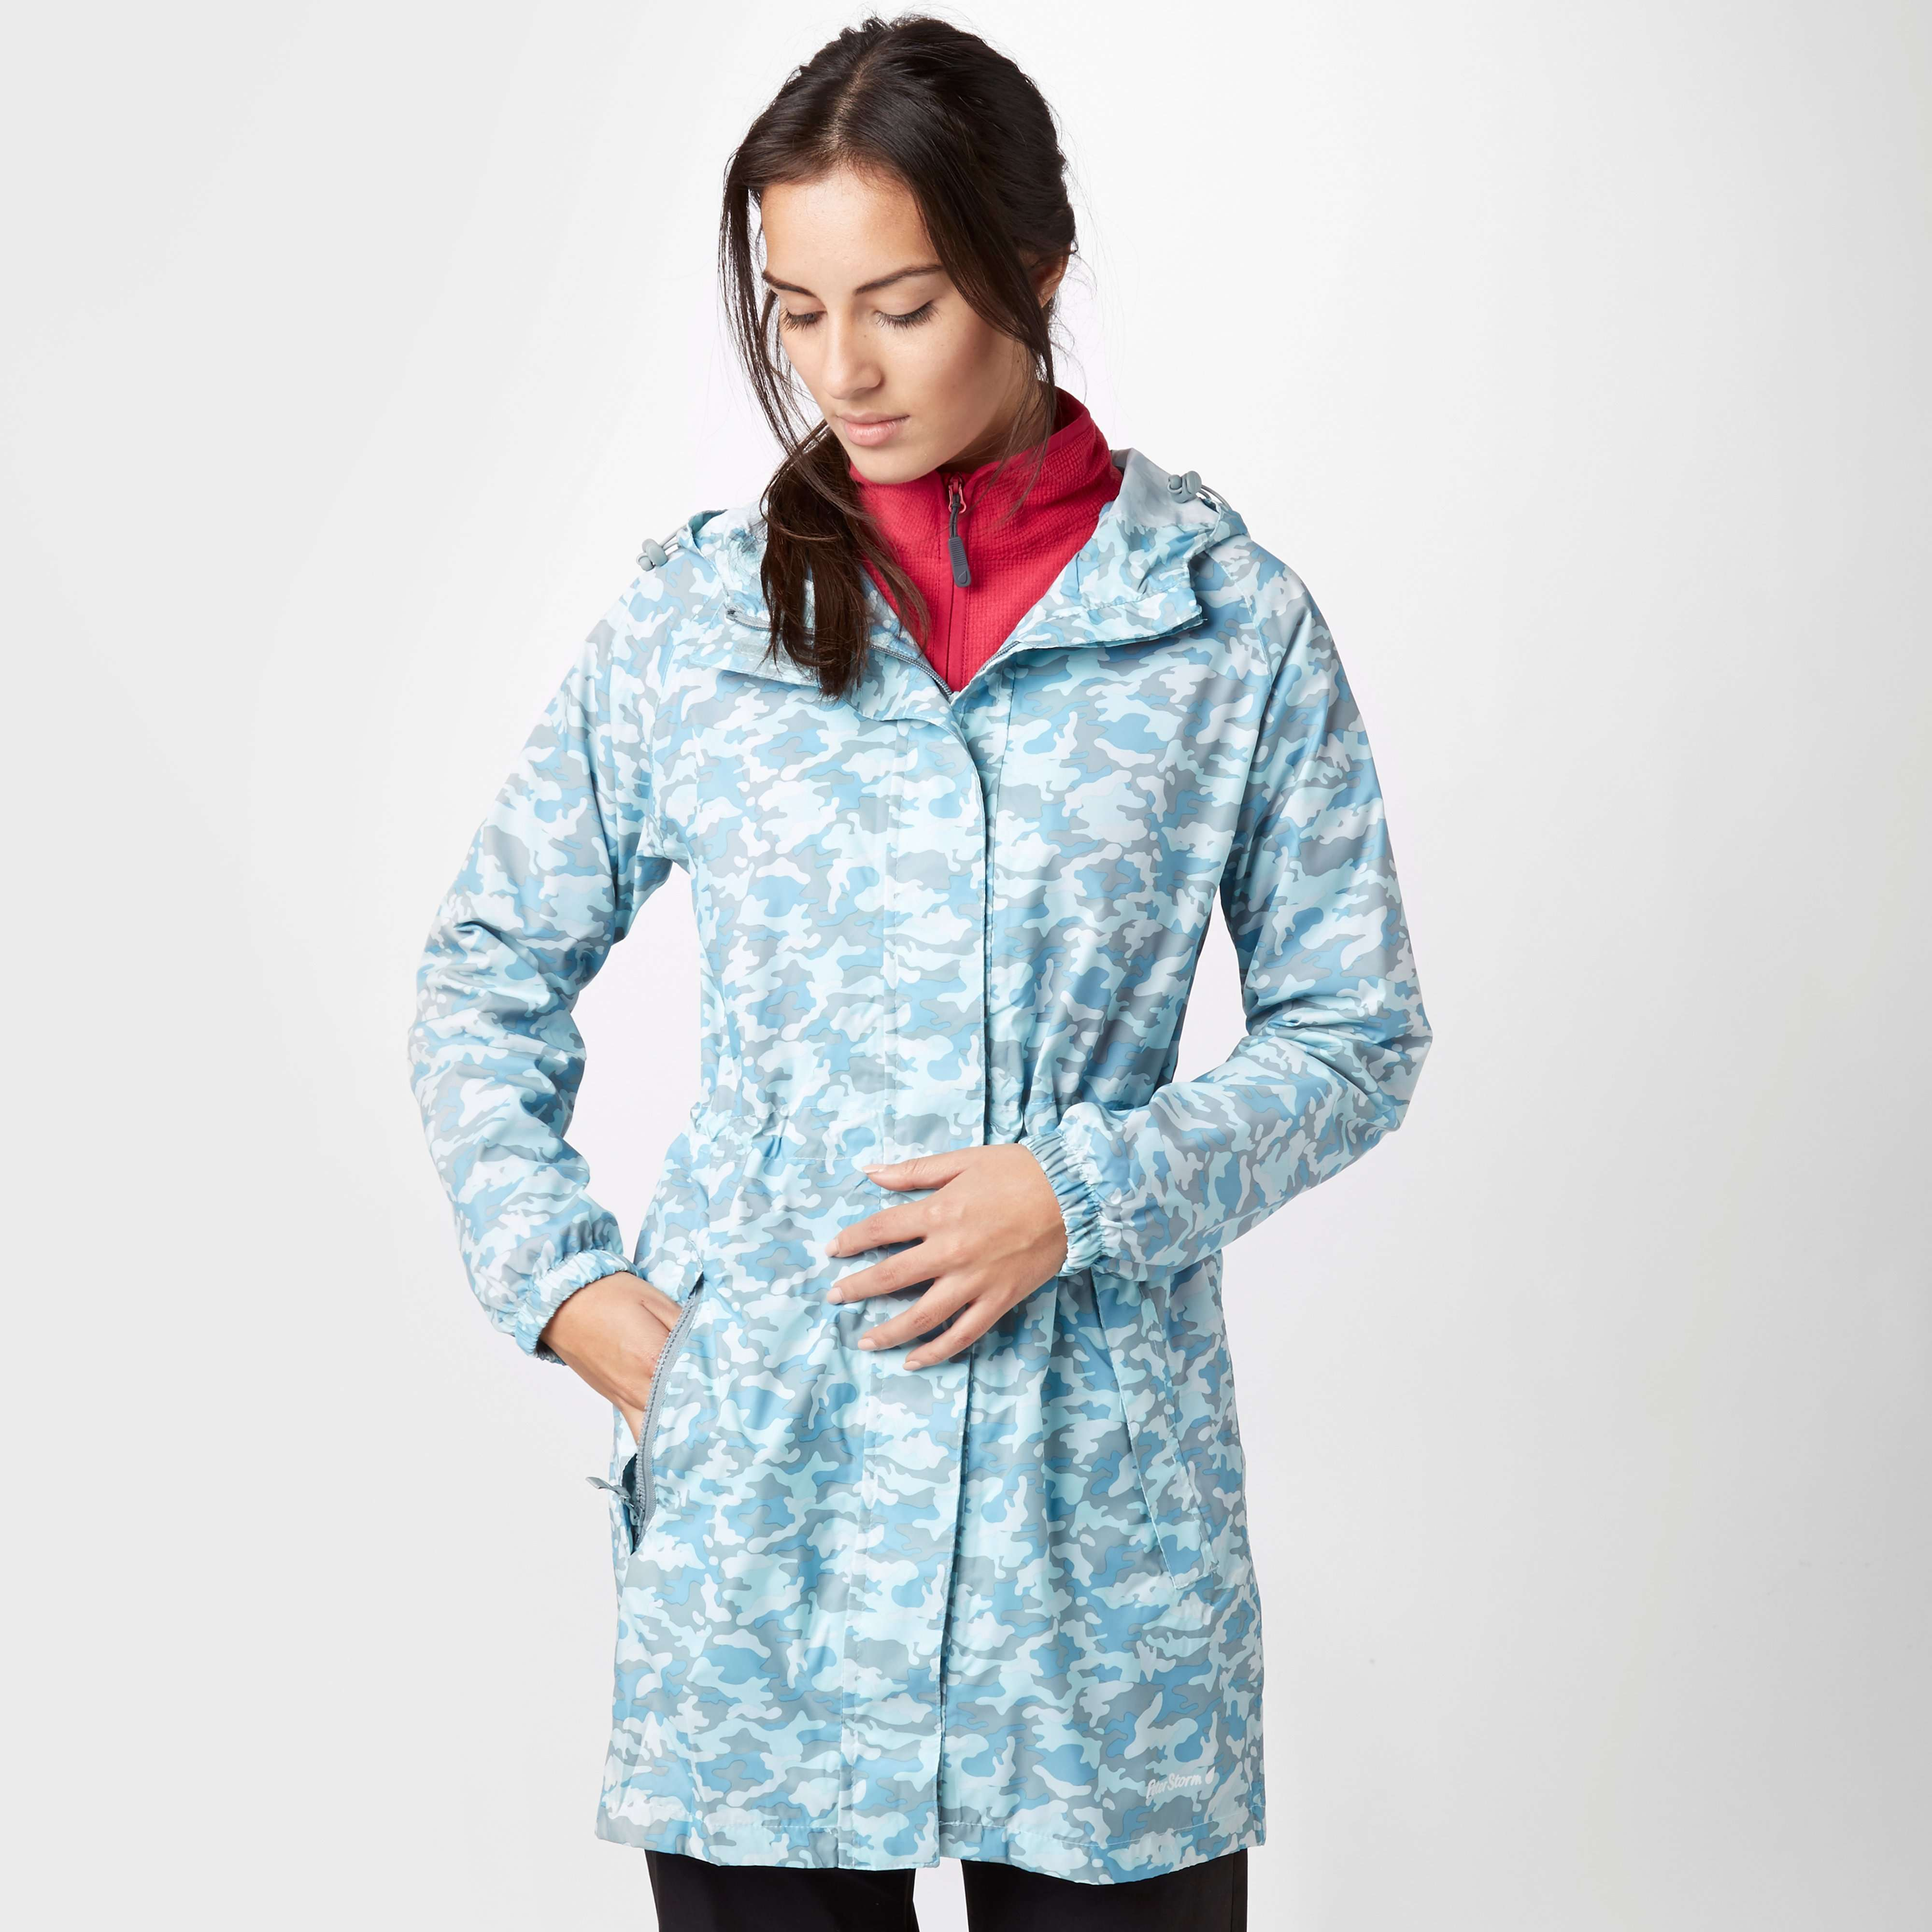 PETER STORM Women's Patterned Parka in a Pack